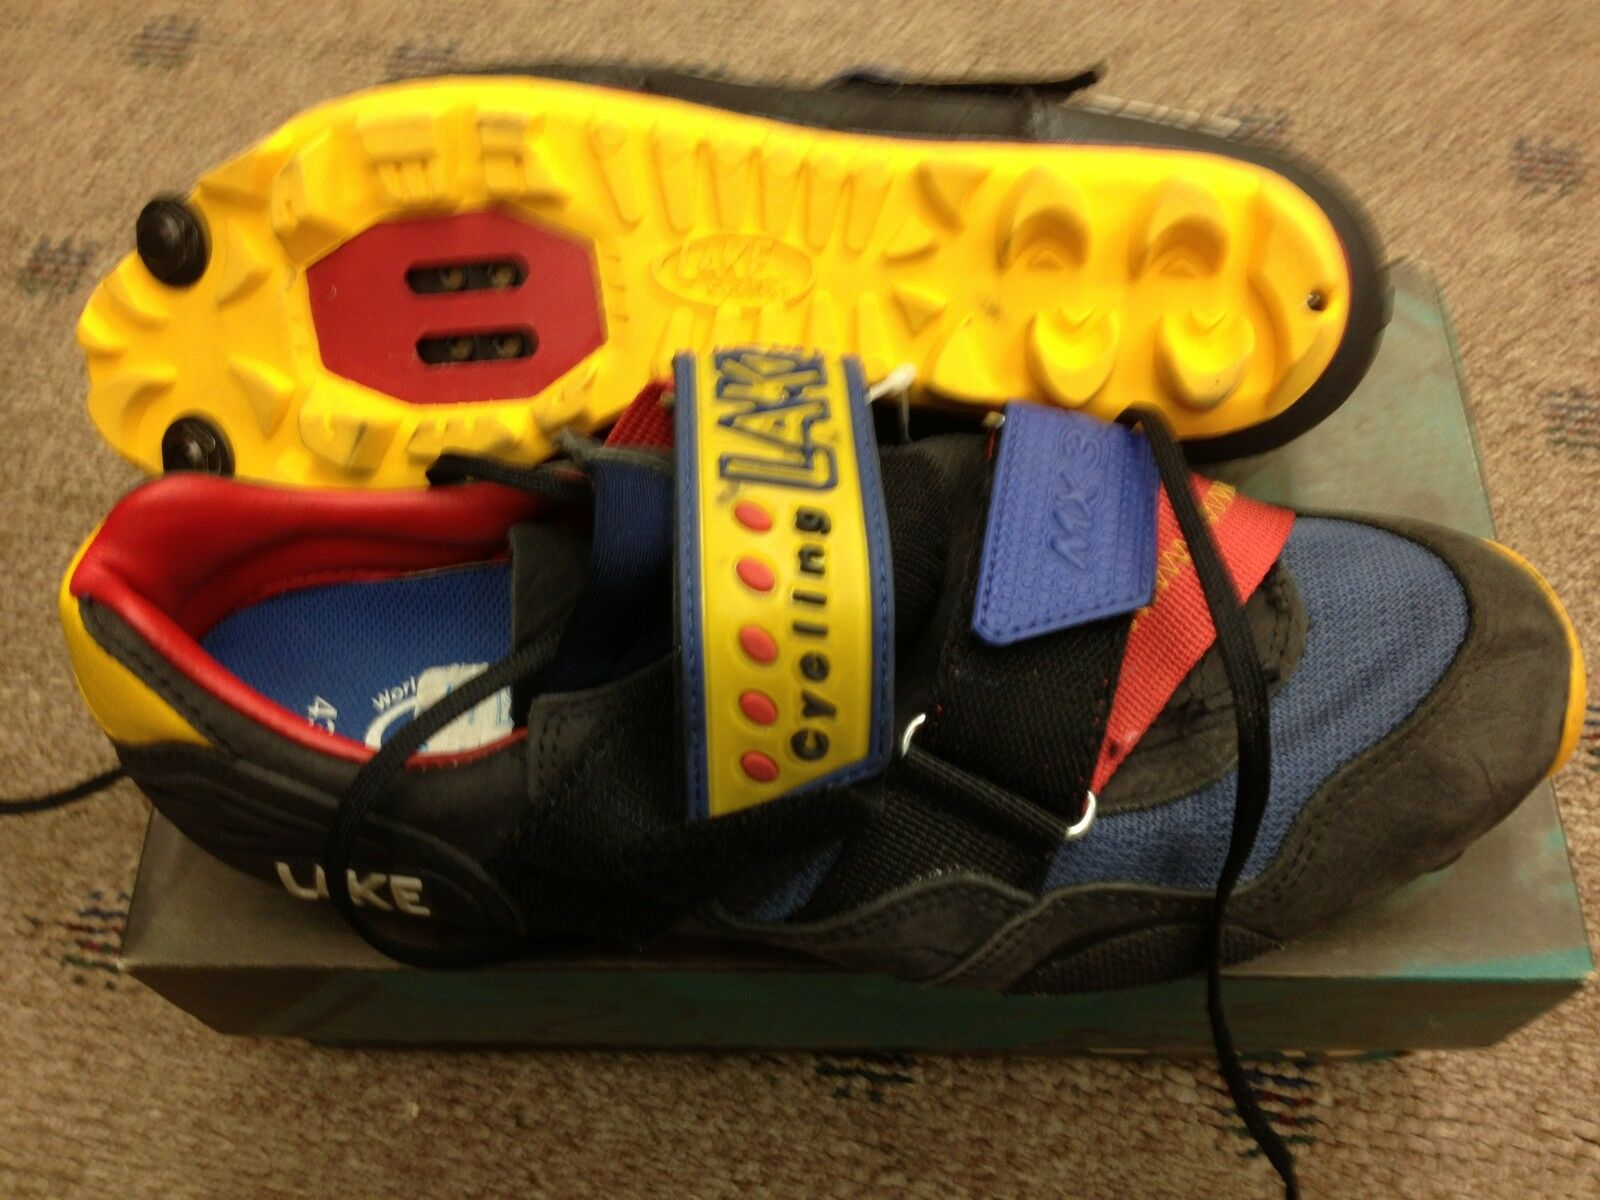 NEW LAKE MX 300 MOUNTAIN SHOES MENS SIZE 43   9 US